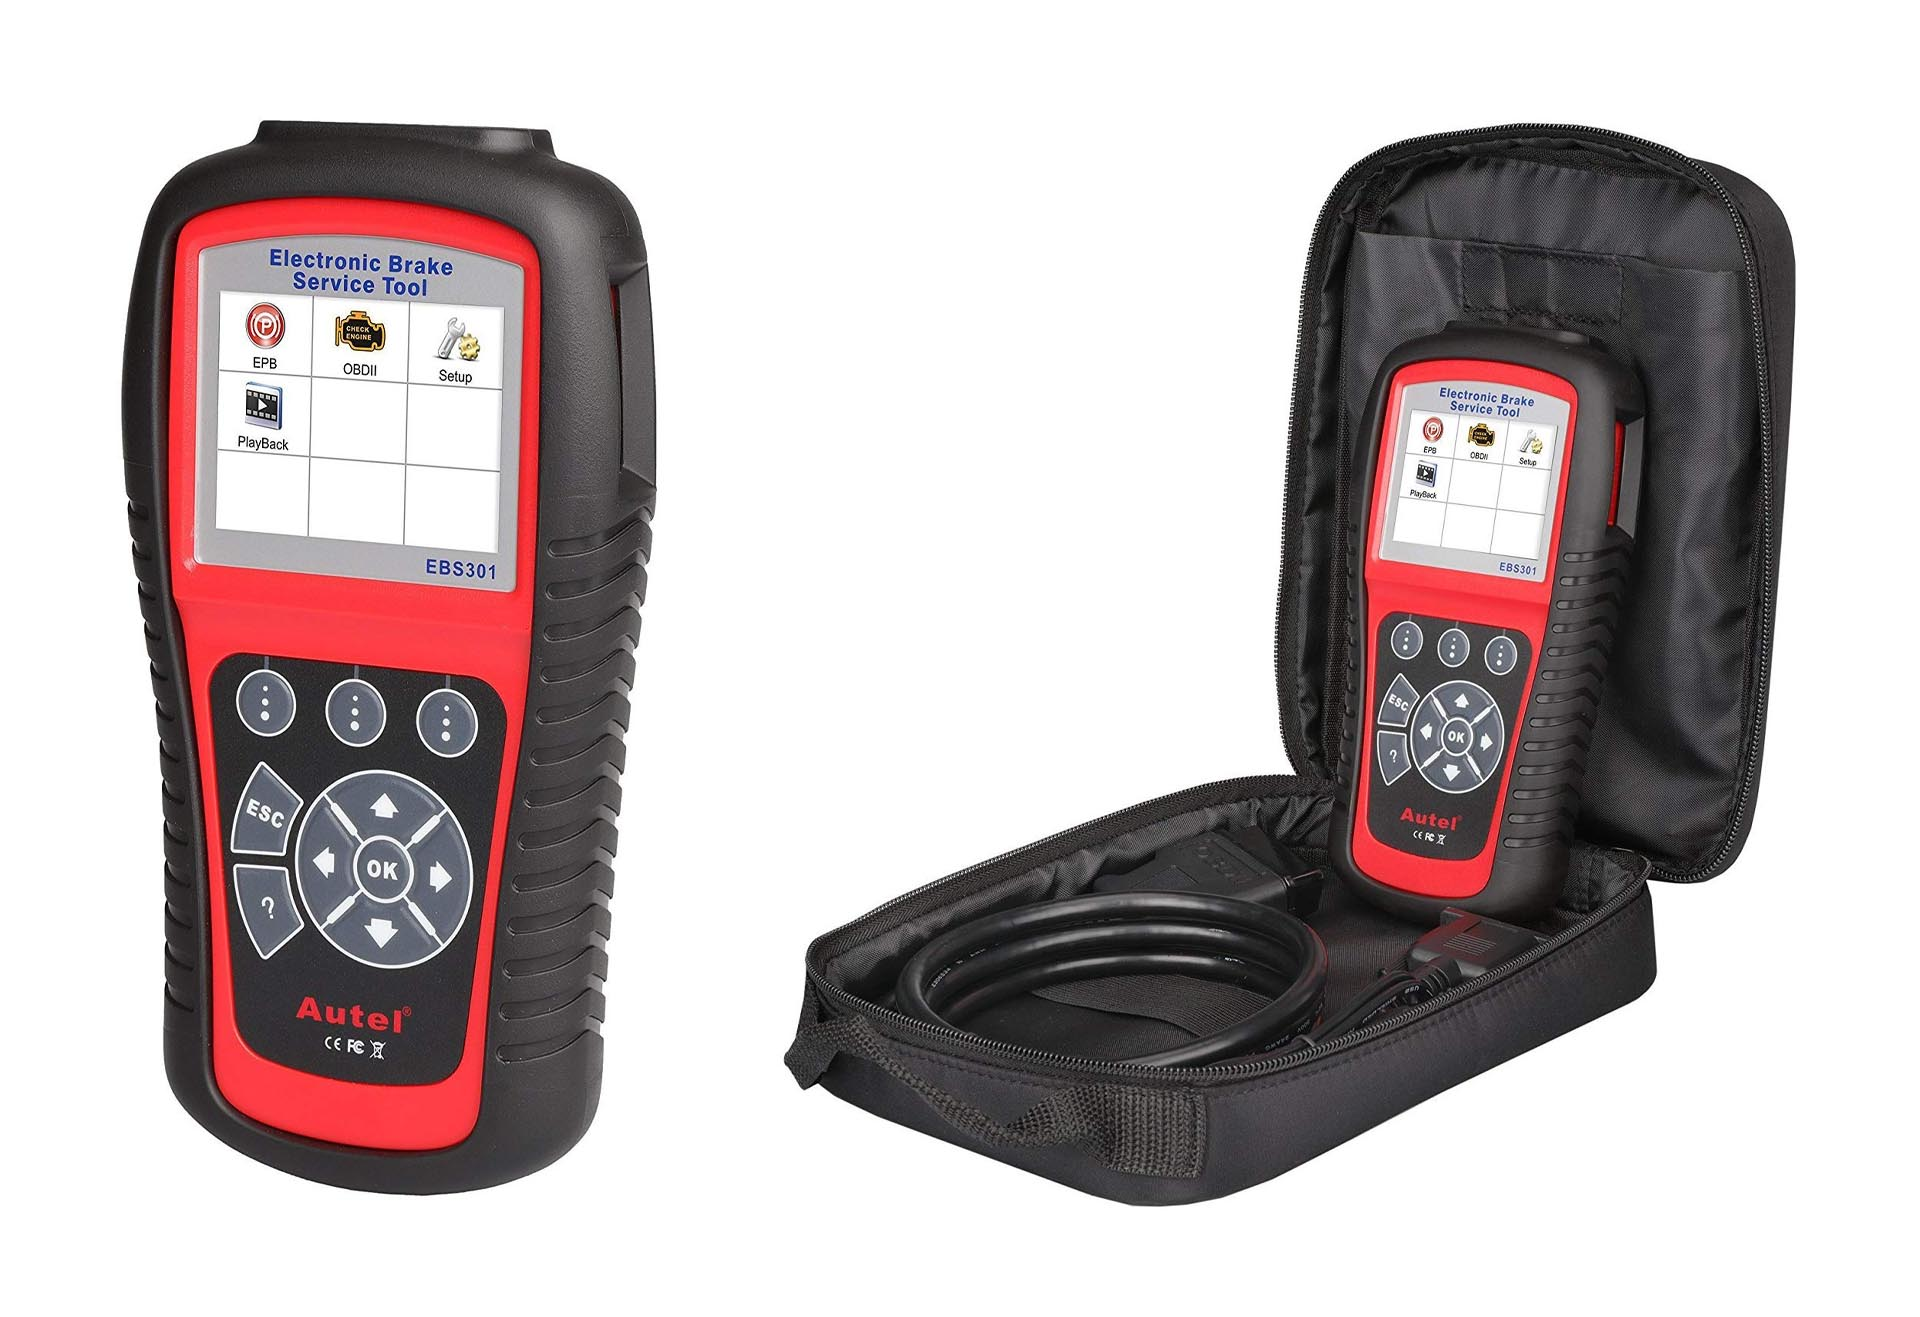 Autel EBS301 Electronic Parking Brake Scan Tool